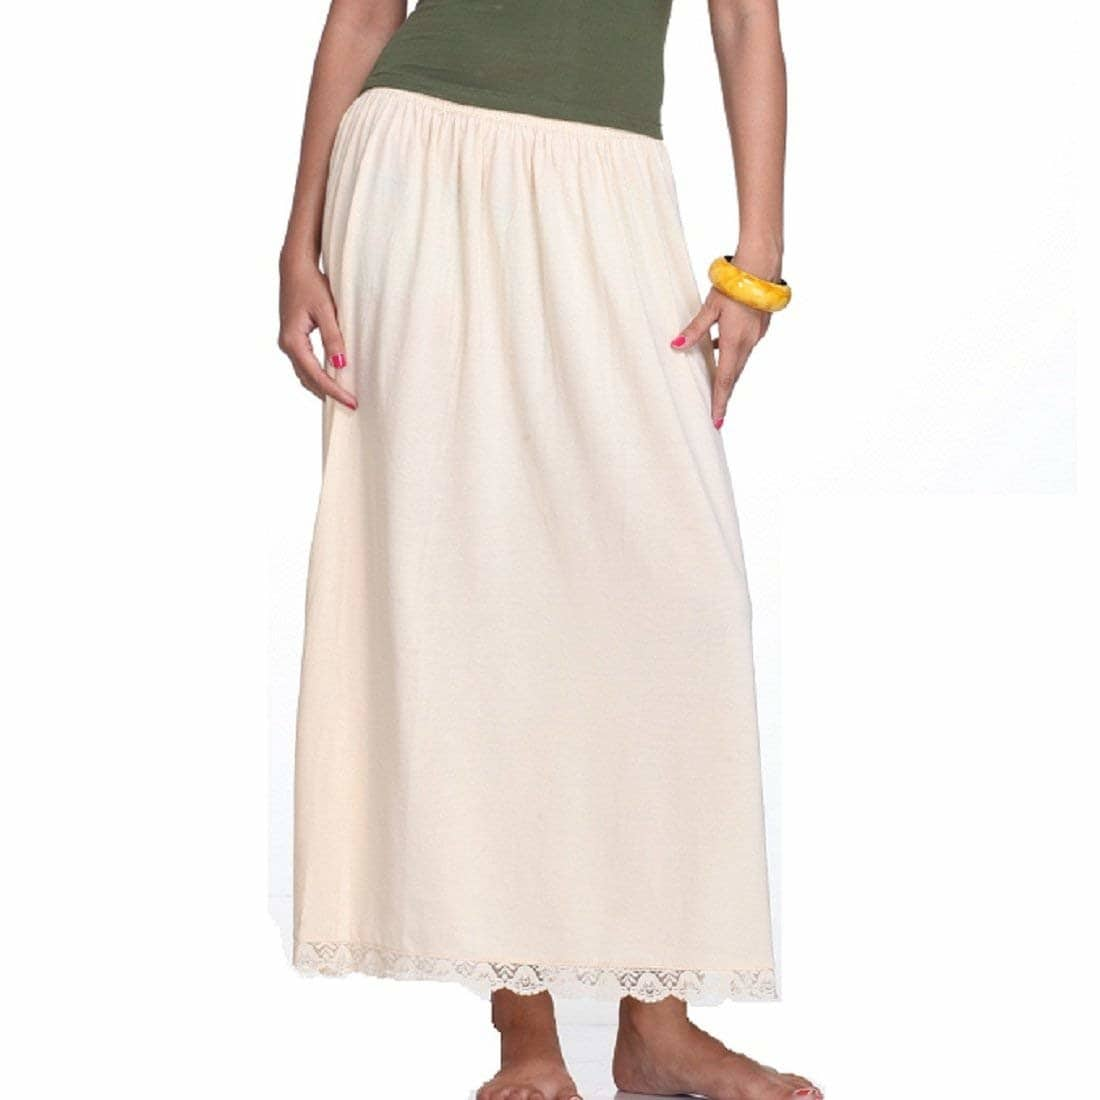 here are some products like petticoat, short, winter wear  of low price from the house Splash, For purchasing click on this link:- https://www.amazon.in/s/ref=nb_sb_noss_2?url=search-alias%3Daps&field-keywords=splash  #petticoat #shorts #bermunda #winterwear